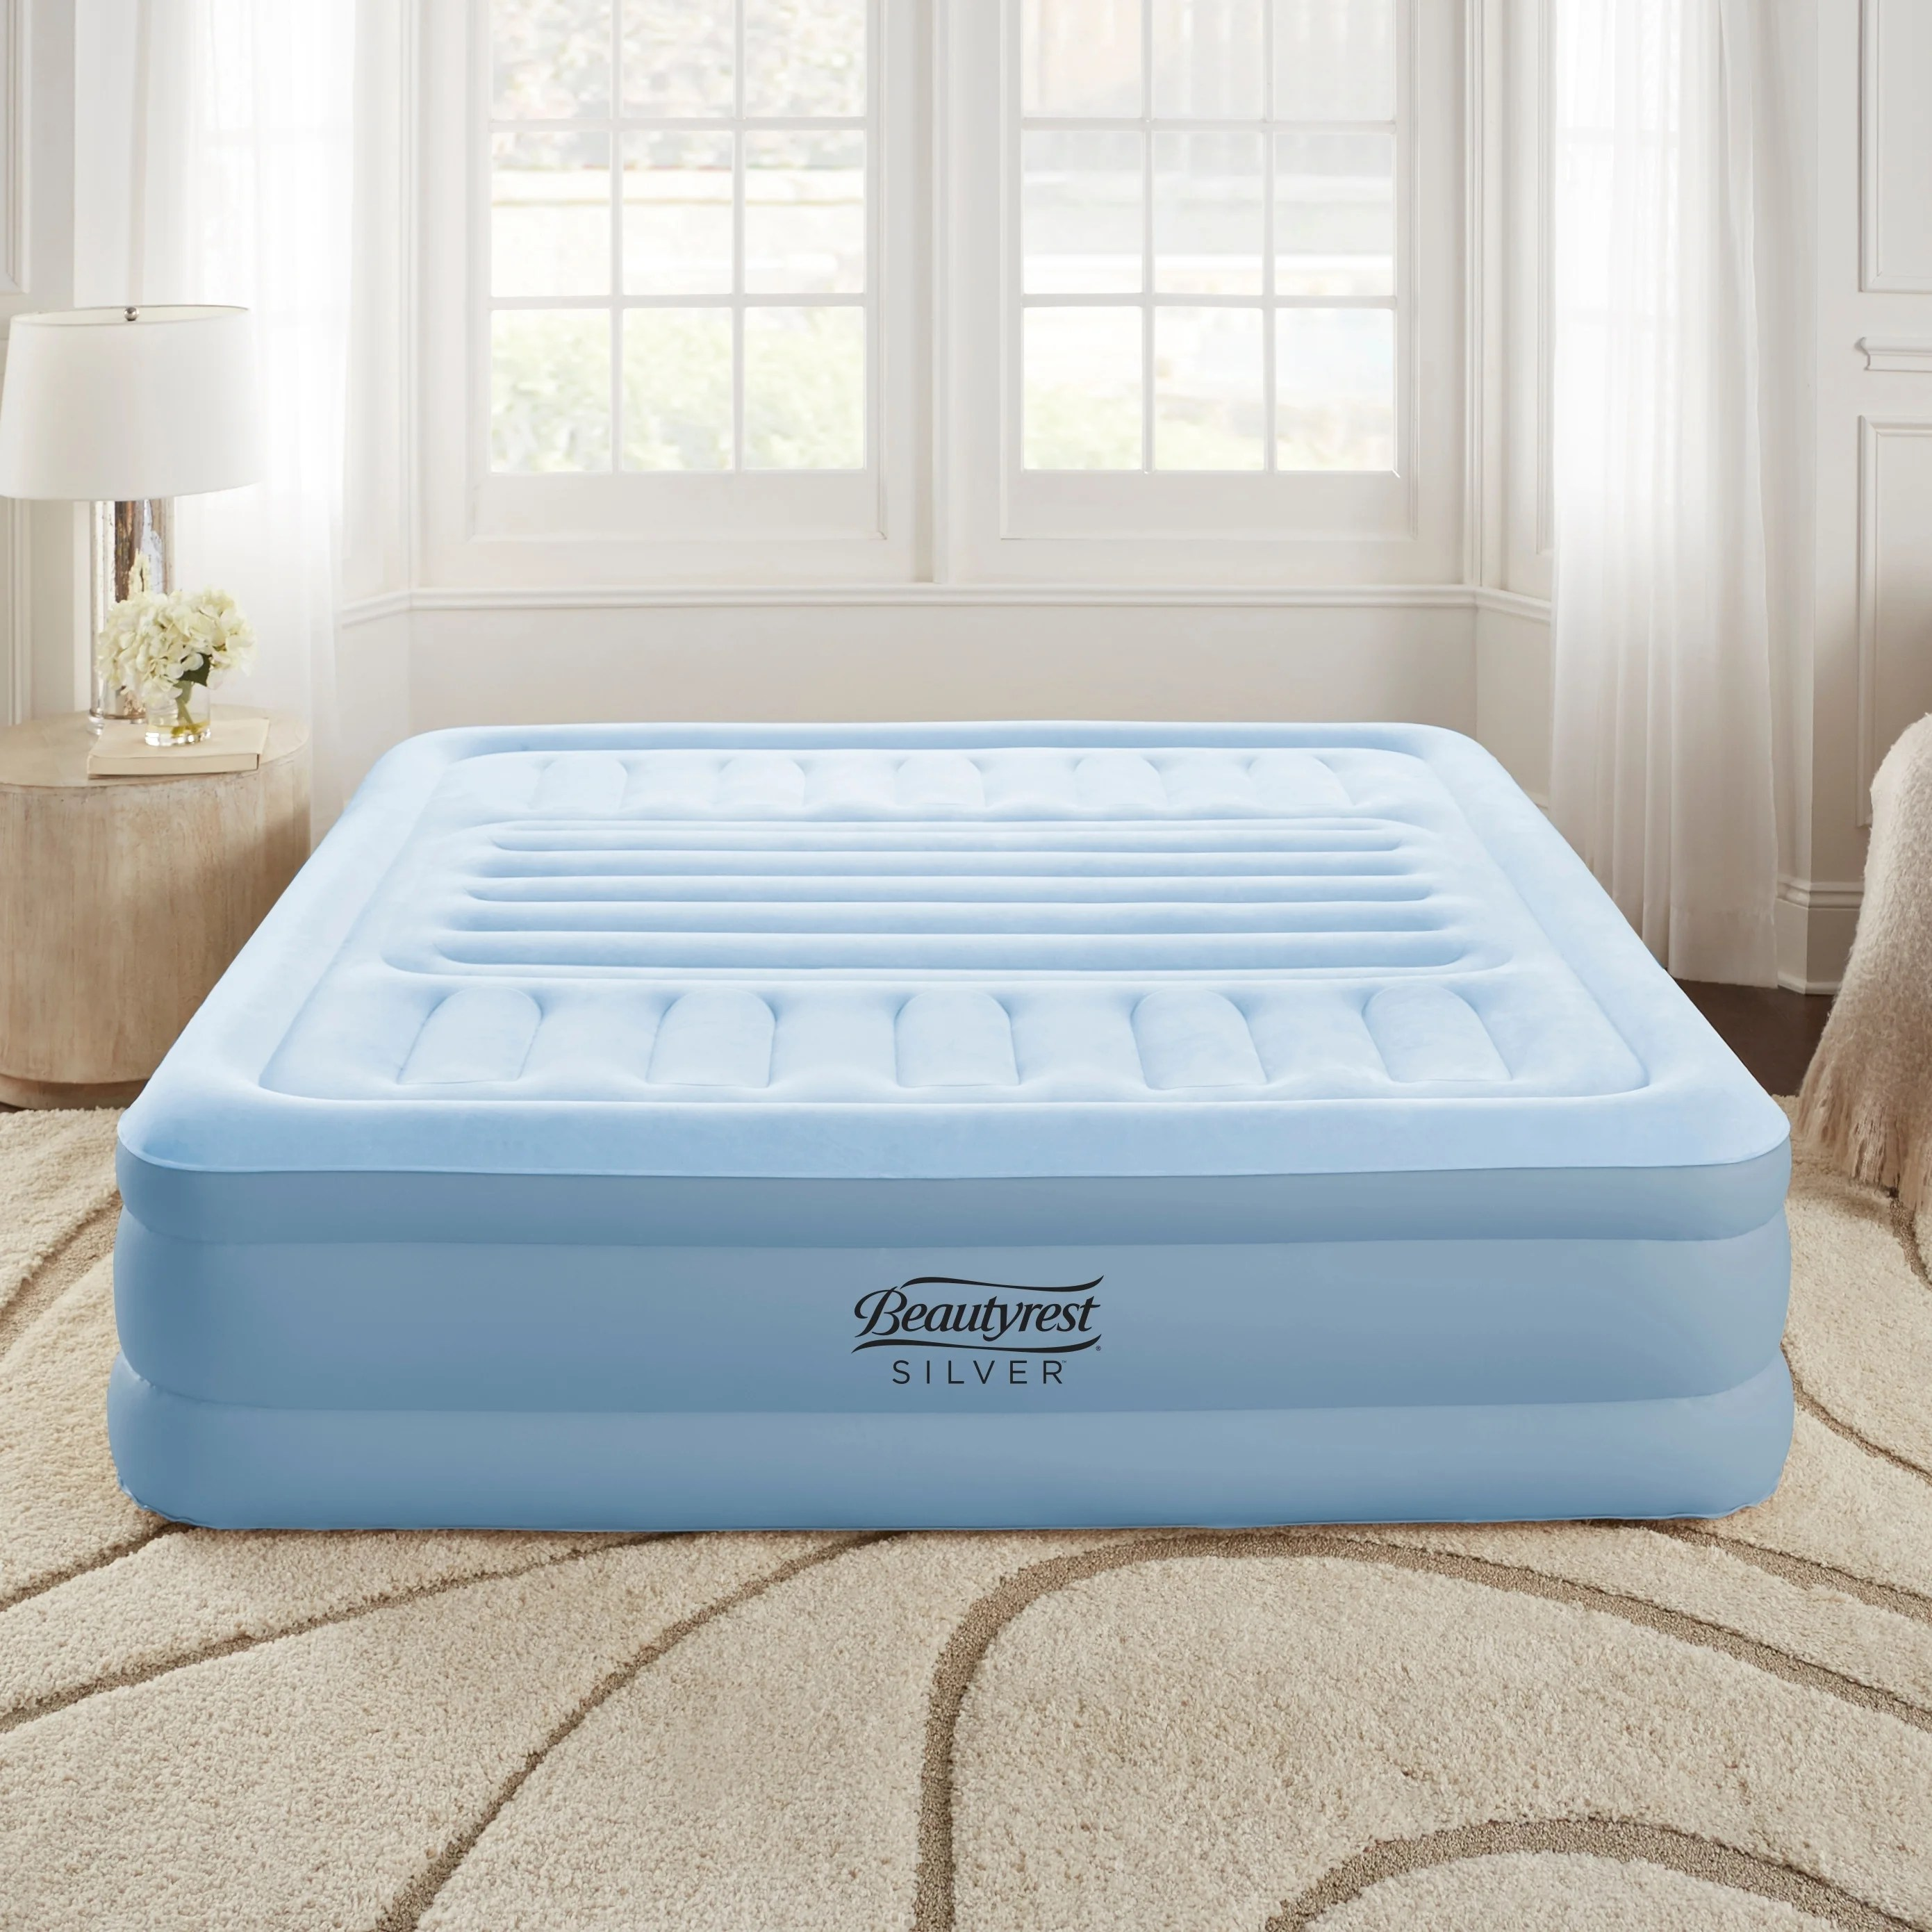 Air Mattress Frame Queen Beautyrest Silver Queen Lumbar Supreme Air Bed Mattress Adjustable Lumbar Support Built In Pump